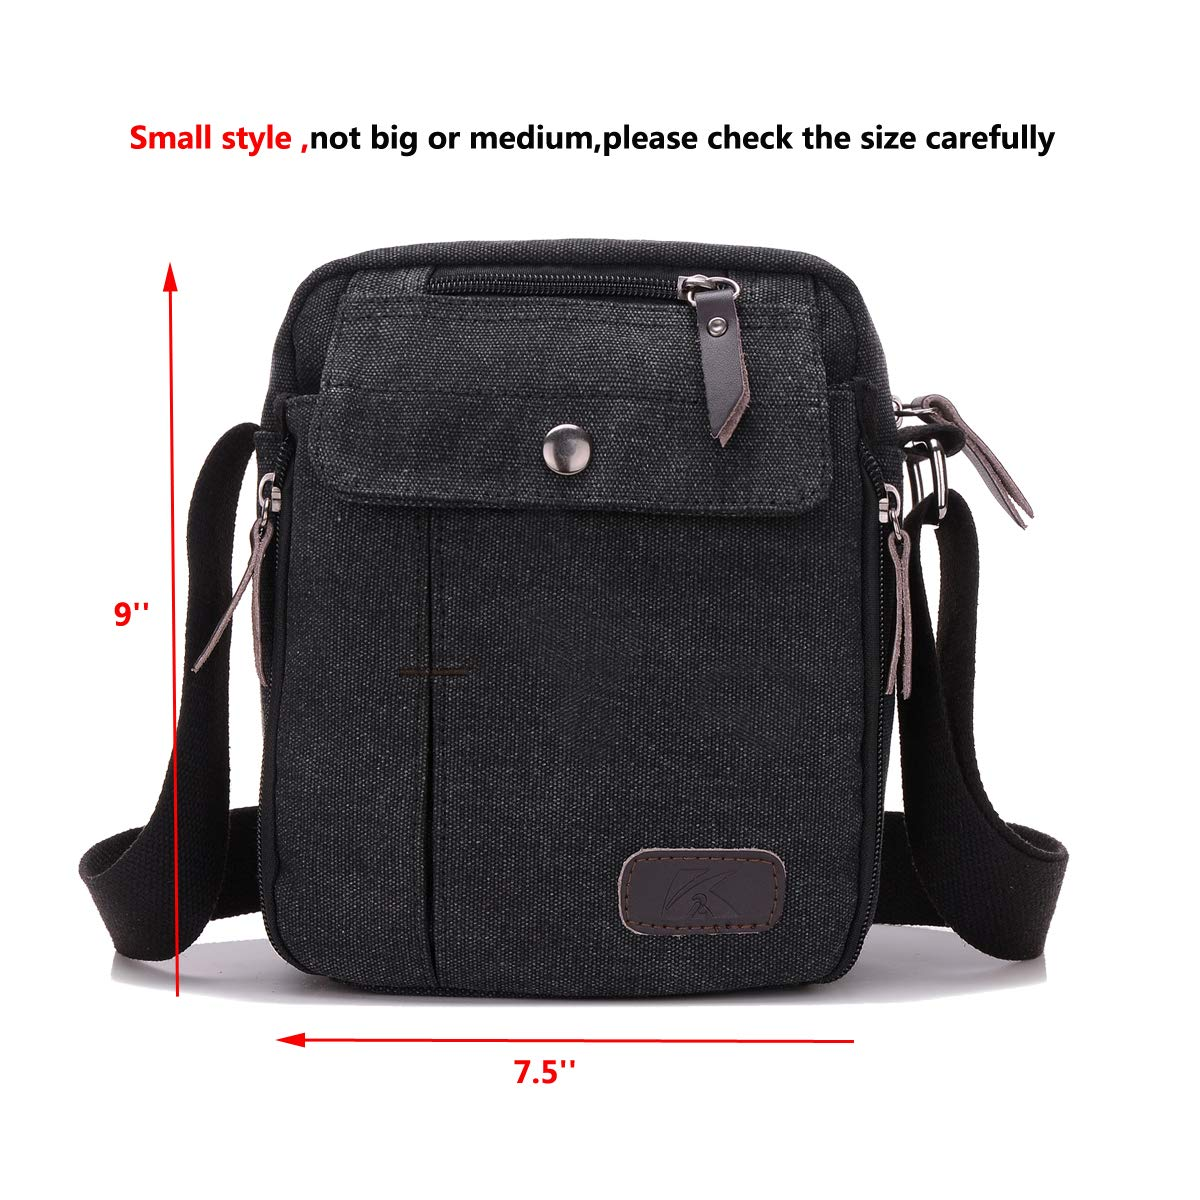 Heavy-Duty Canvas Small Messenger Bag Classic Multi-pocket Mini Shoulder Crossbody Bags Travel Purse by Haoguagua (Image #3)